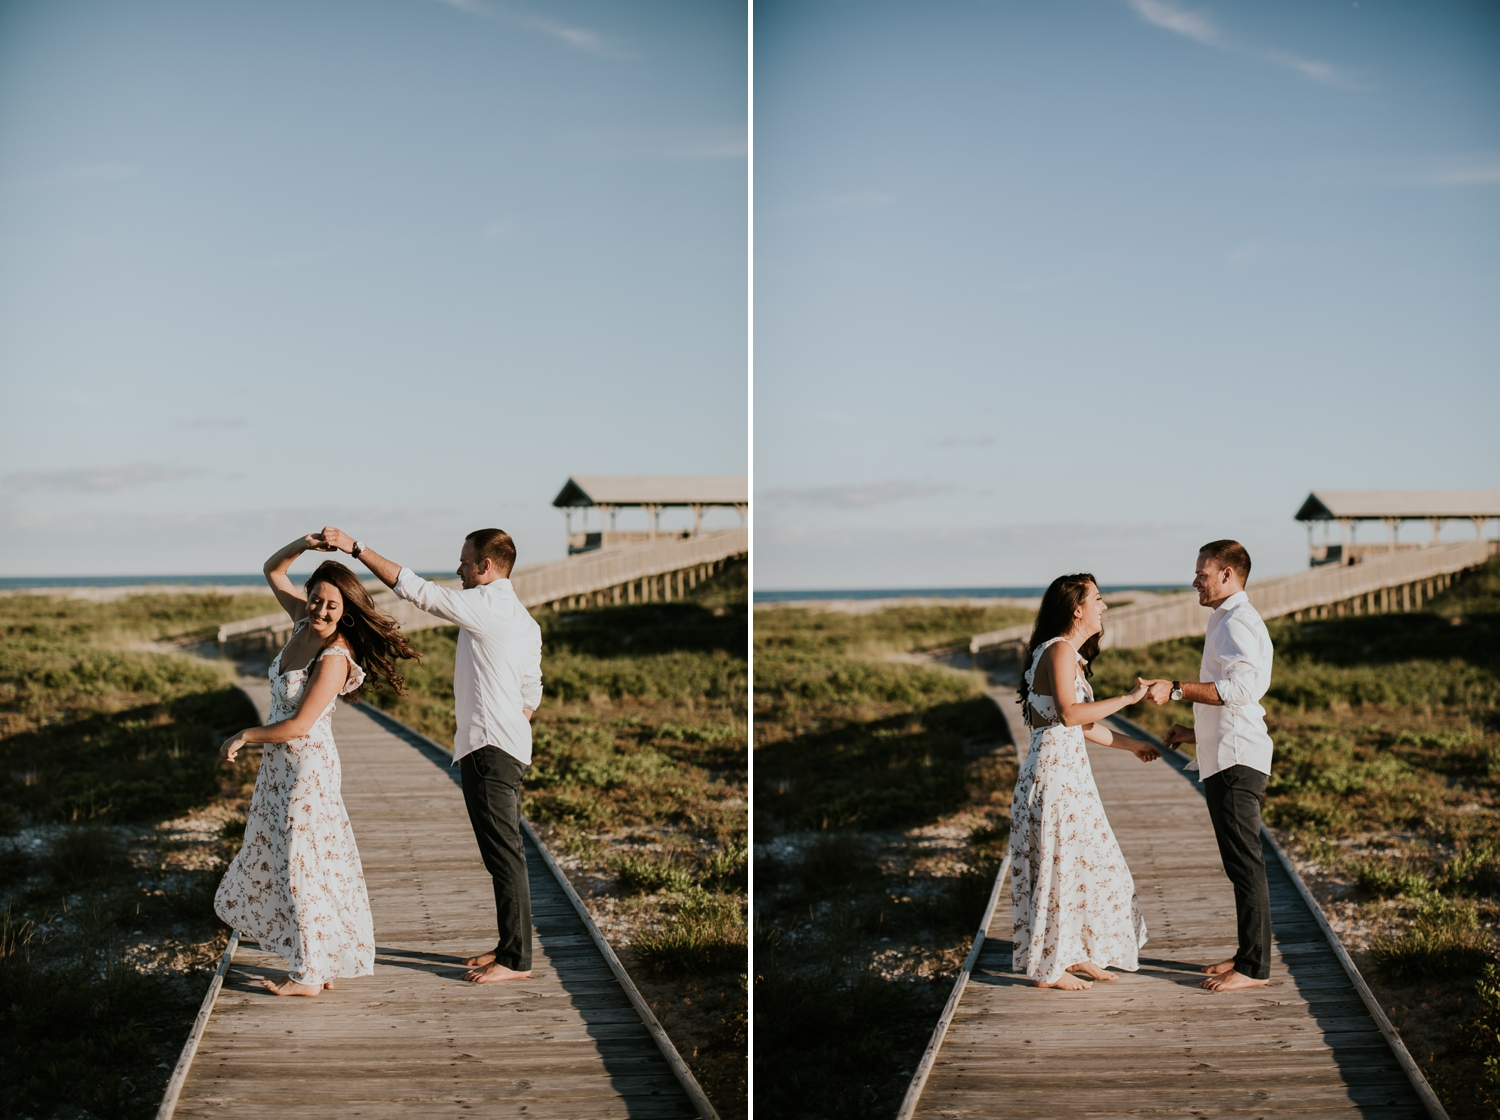 ho-hum-beach-boat-ride-engagement-photography-bellport-new-york 7.jpg